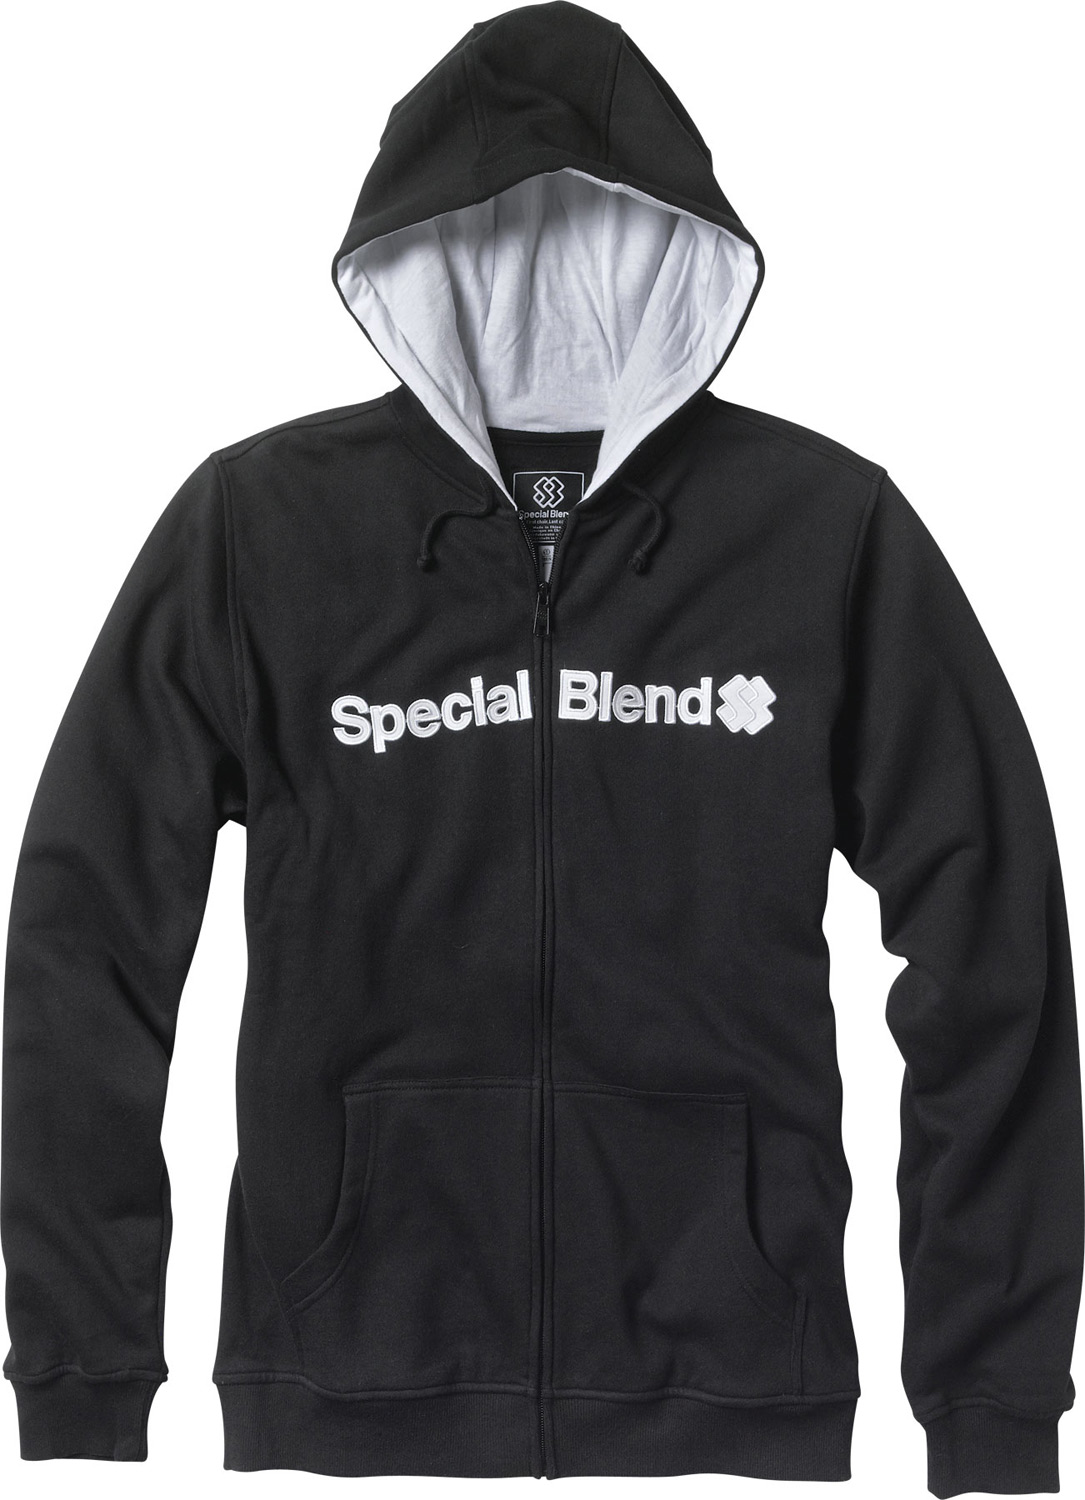 Key Features of the Special Blend Blended Zip Hoodie: Full zip hooded fleece Freedom fit 80% cotton 20% polyester, 300 gms. Screenprint art - $34.95